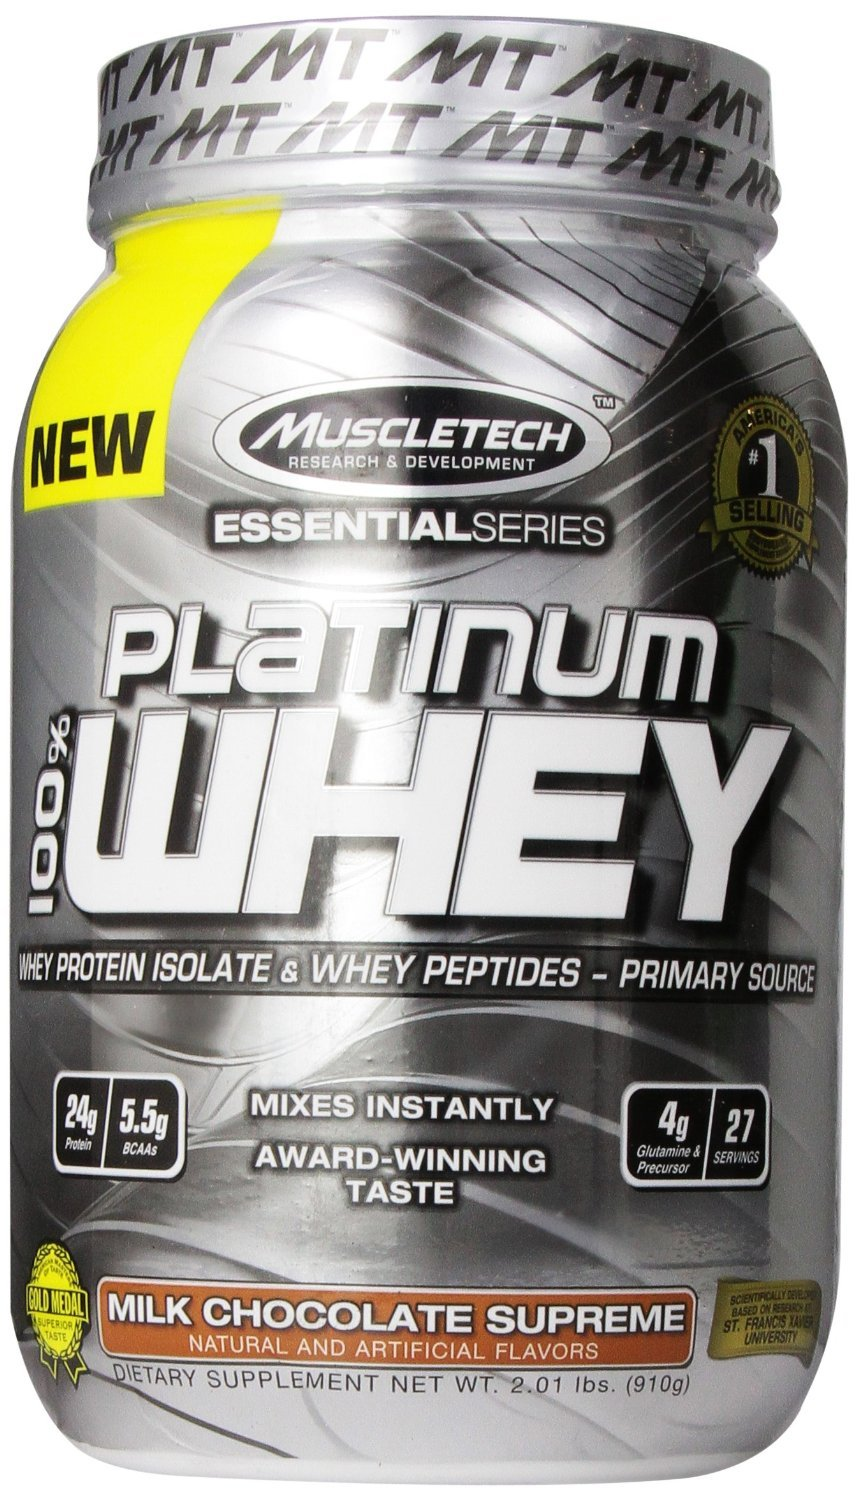 Primary image for MuscleTech Essential Platinum 100% Whey, 2 lb Milk Chocolate Supreme